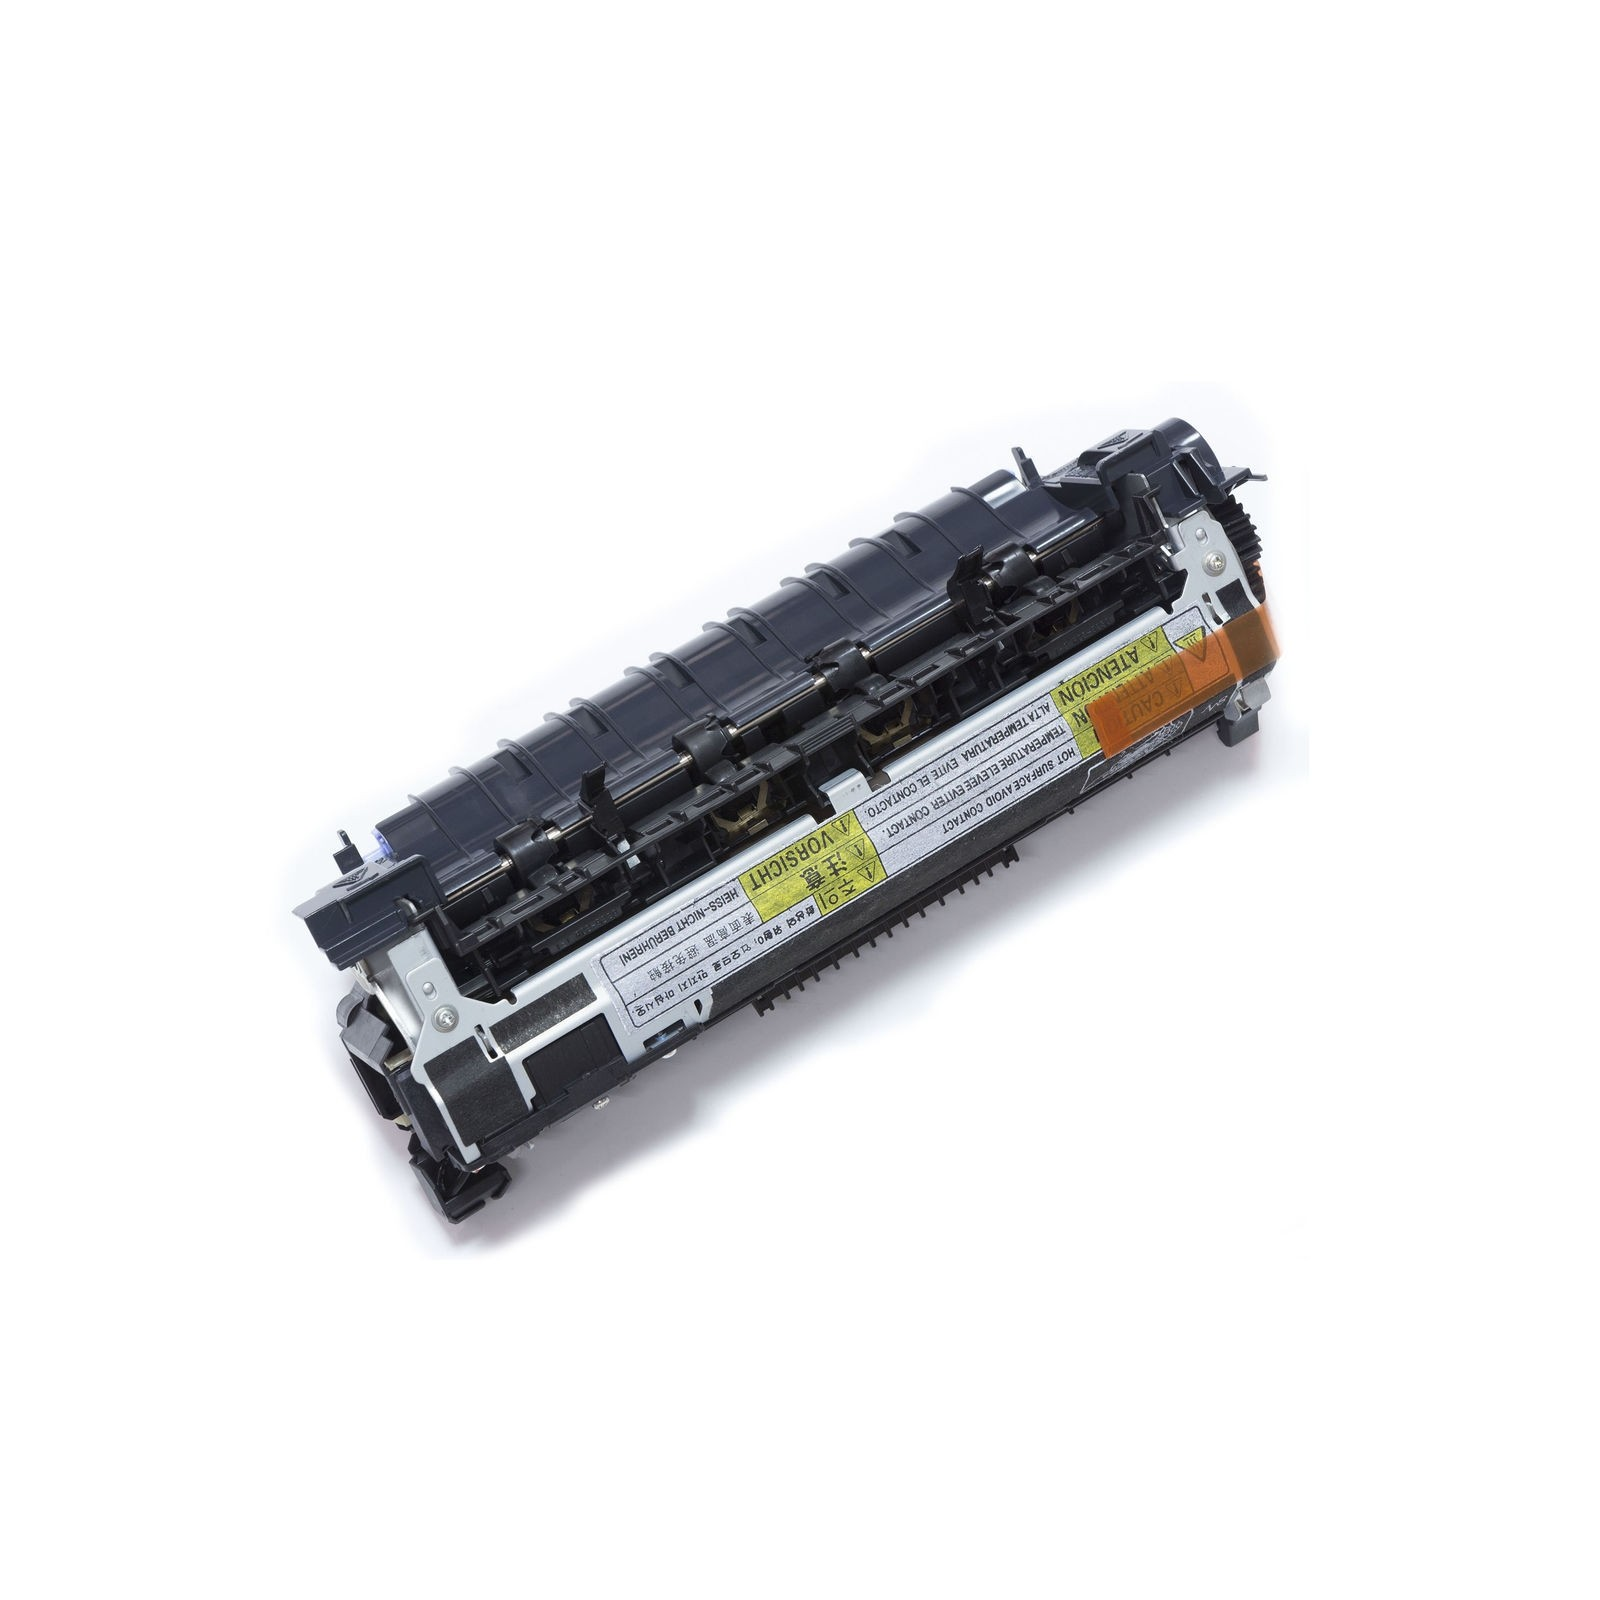 RM2-6308 RM2-6342 HP FUSER FOR LASERJET M604 M605 M606 Fuser Unit 110v